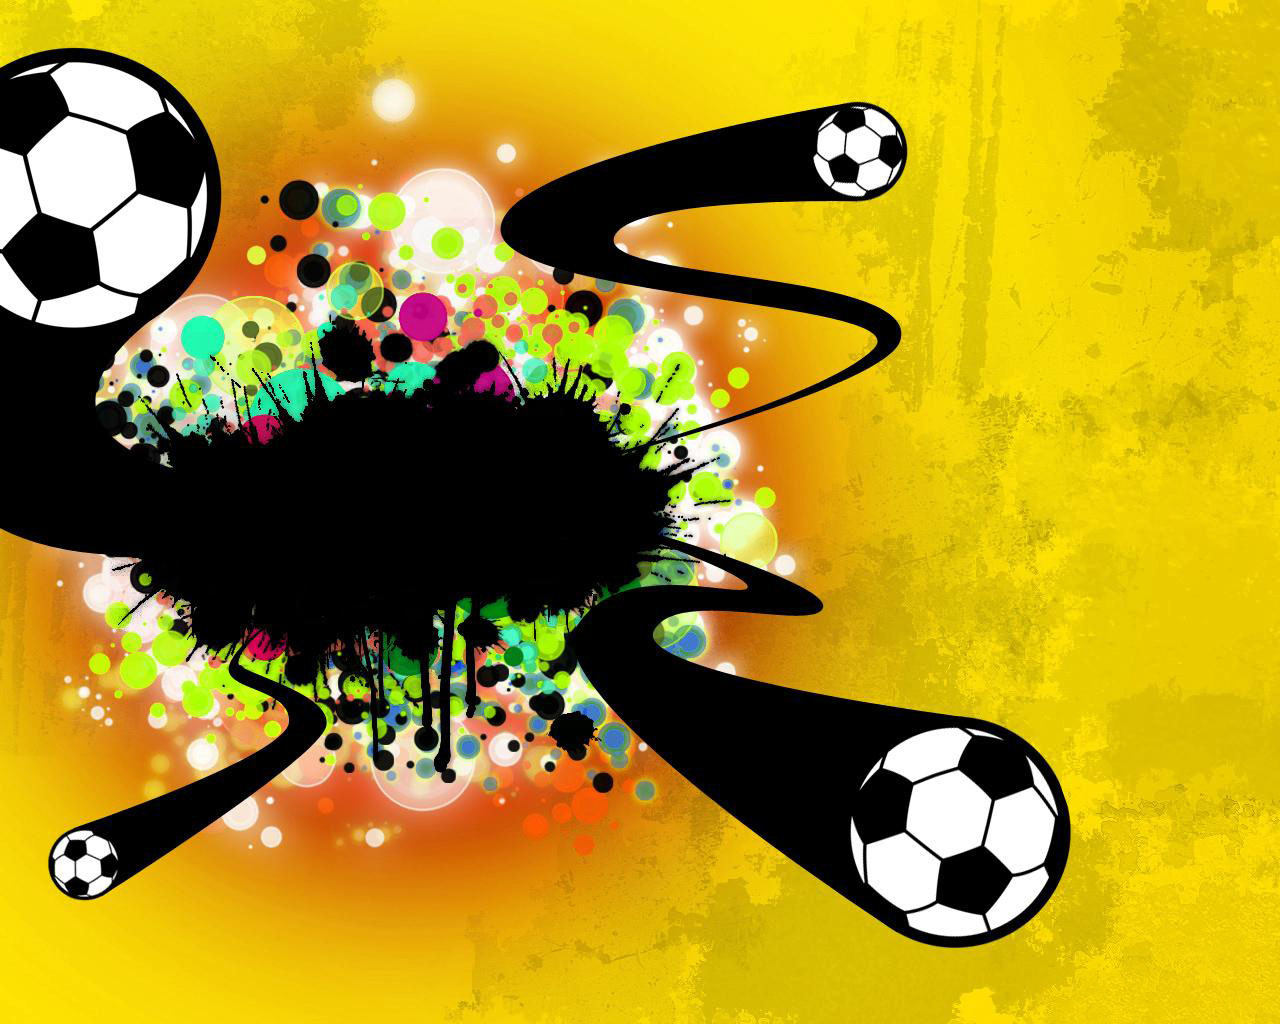 Cool Soccer Ball Wallpaper 1280x1024